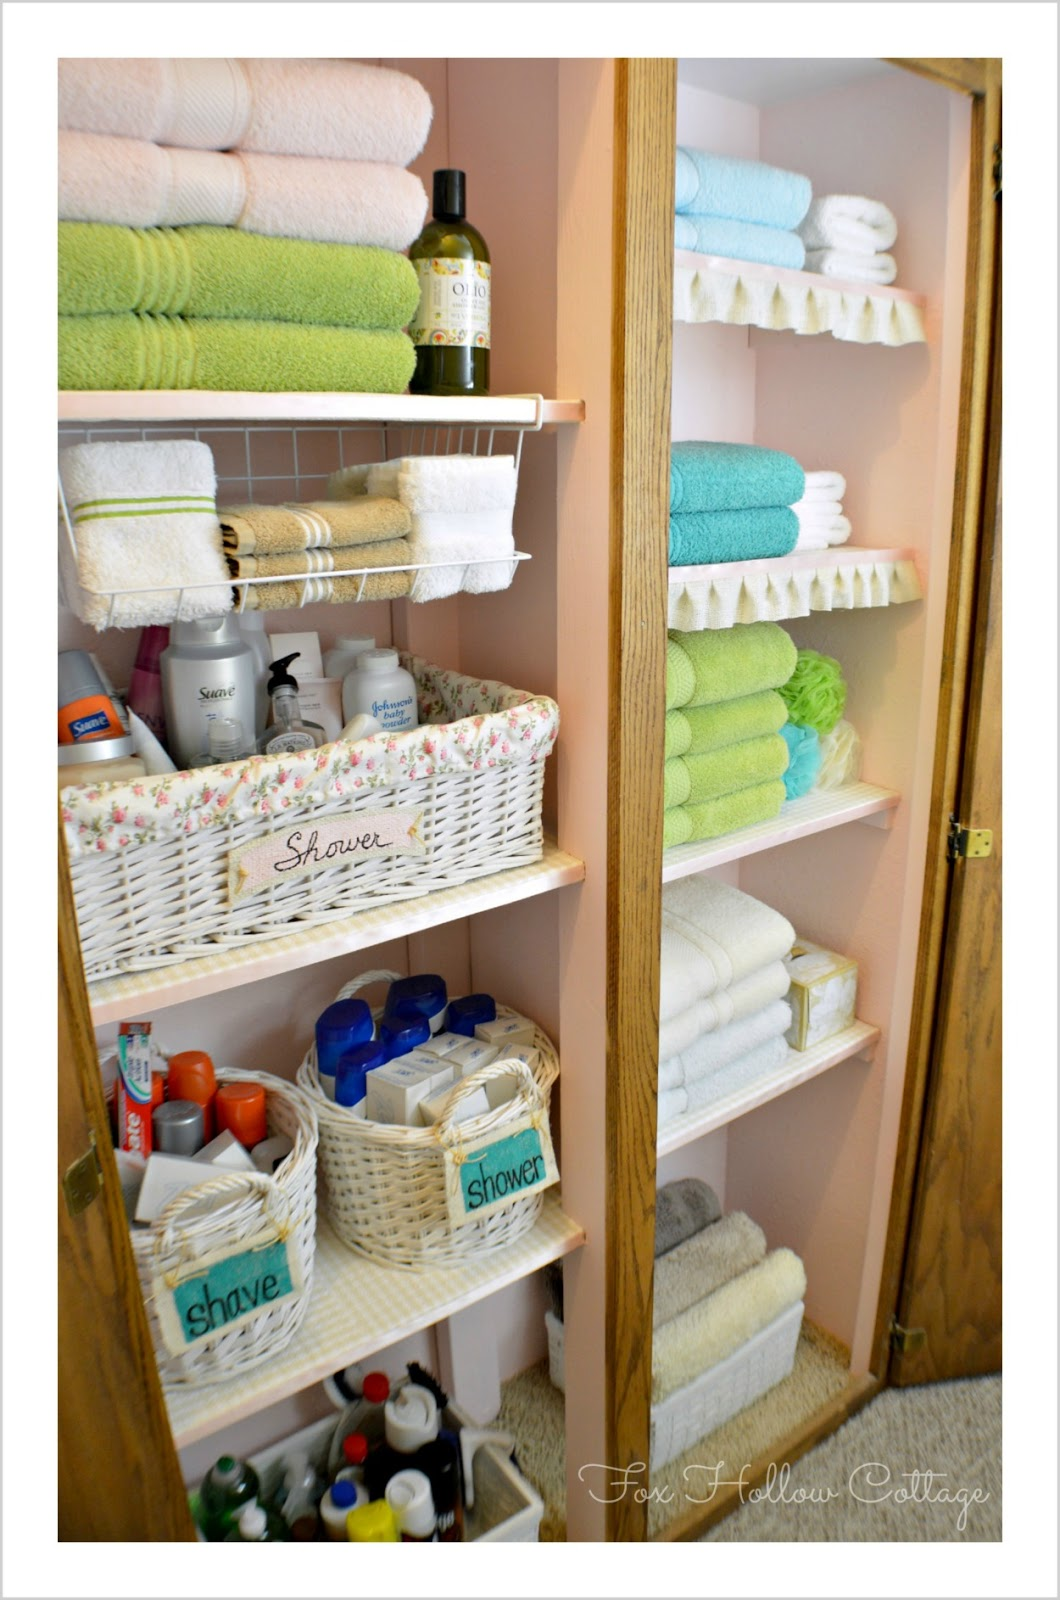 ross often has really low priced baskets and if that doesnu0027t work you can try the dollar tree or even covering boxes with wrapping or craft paper can - Linen Closet